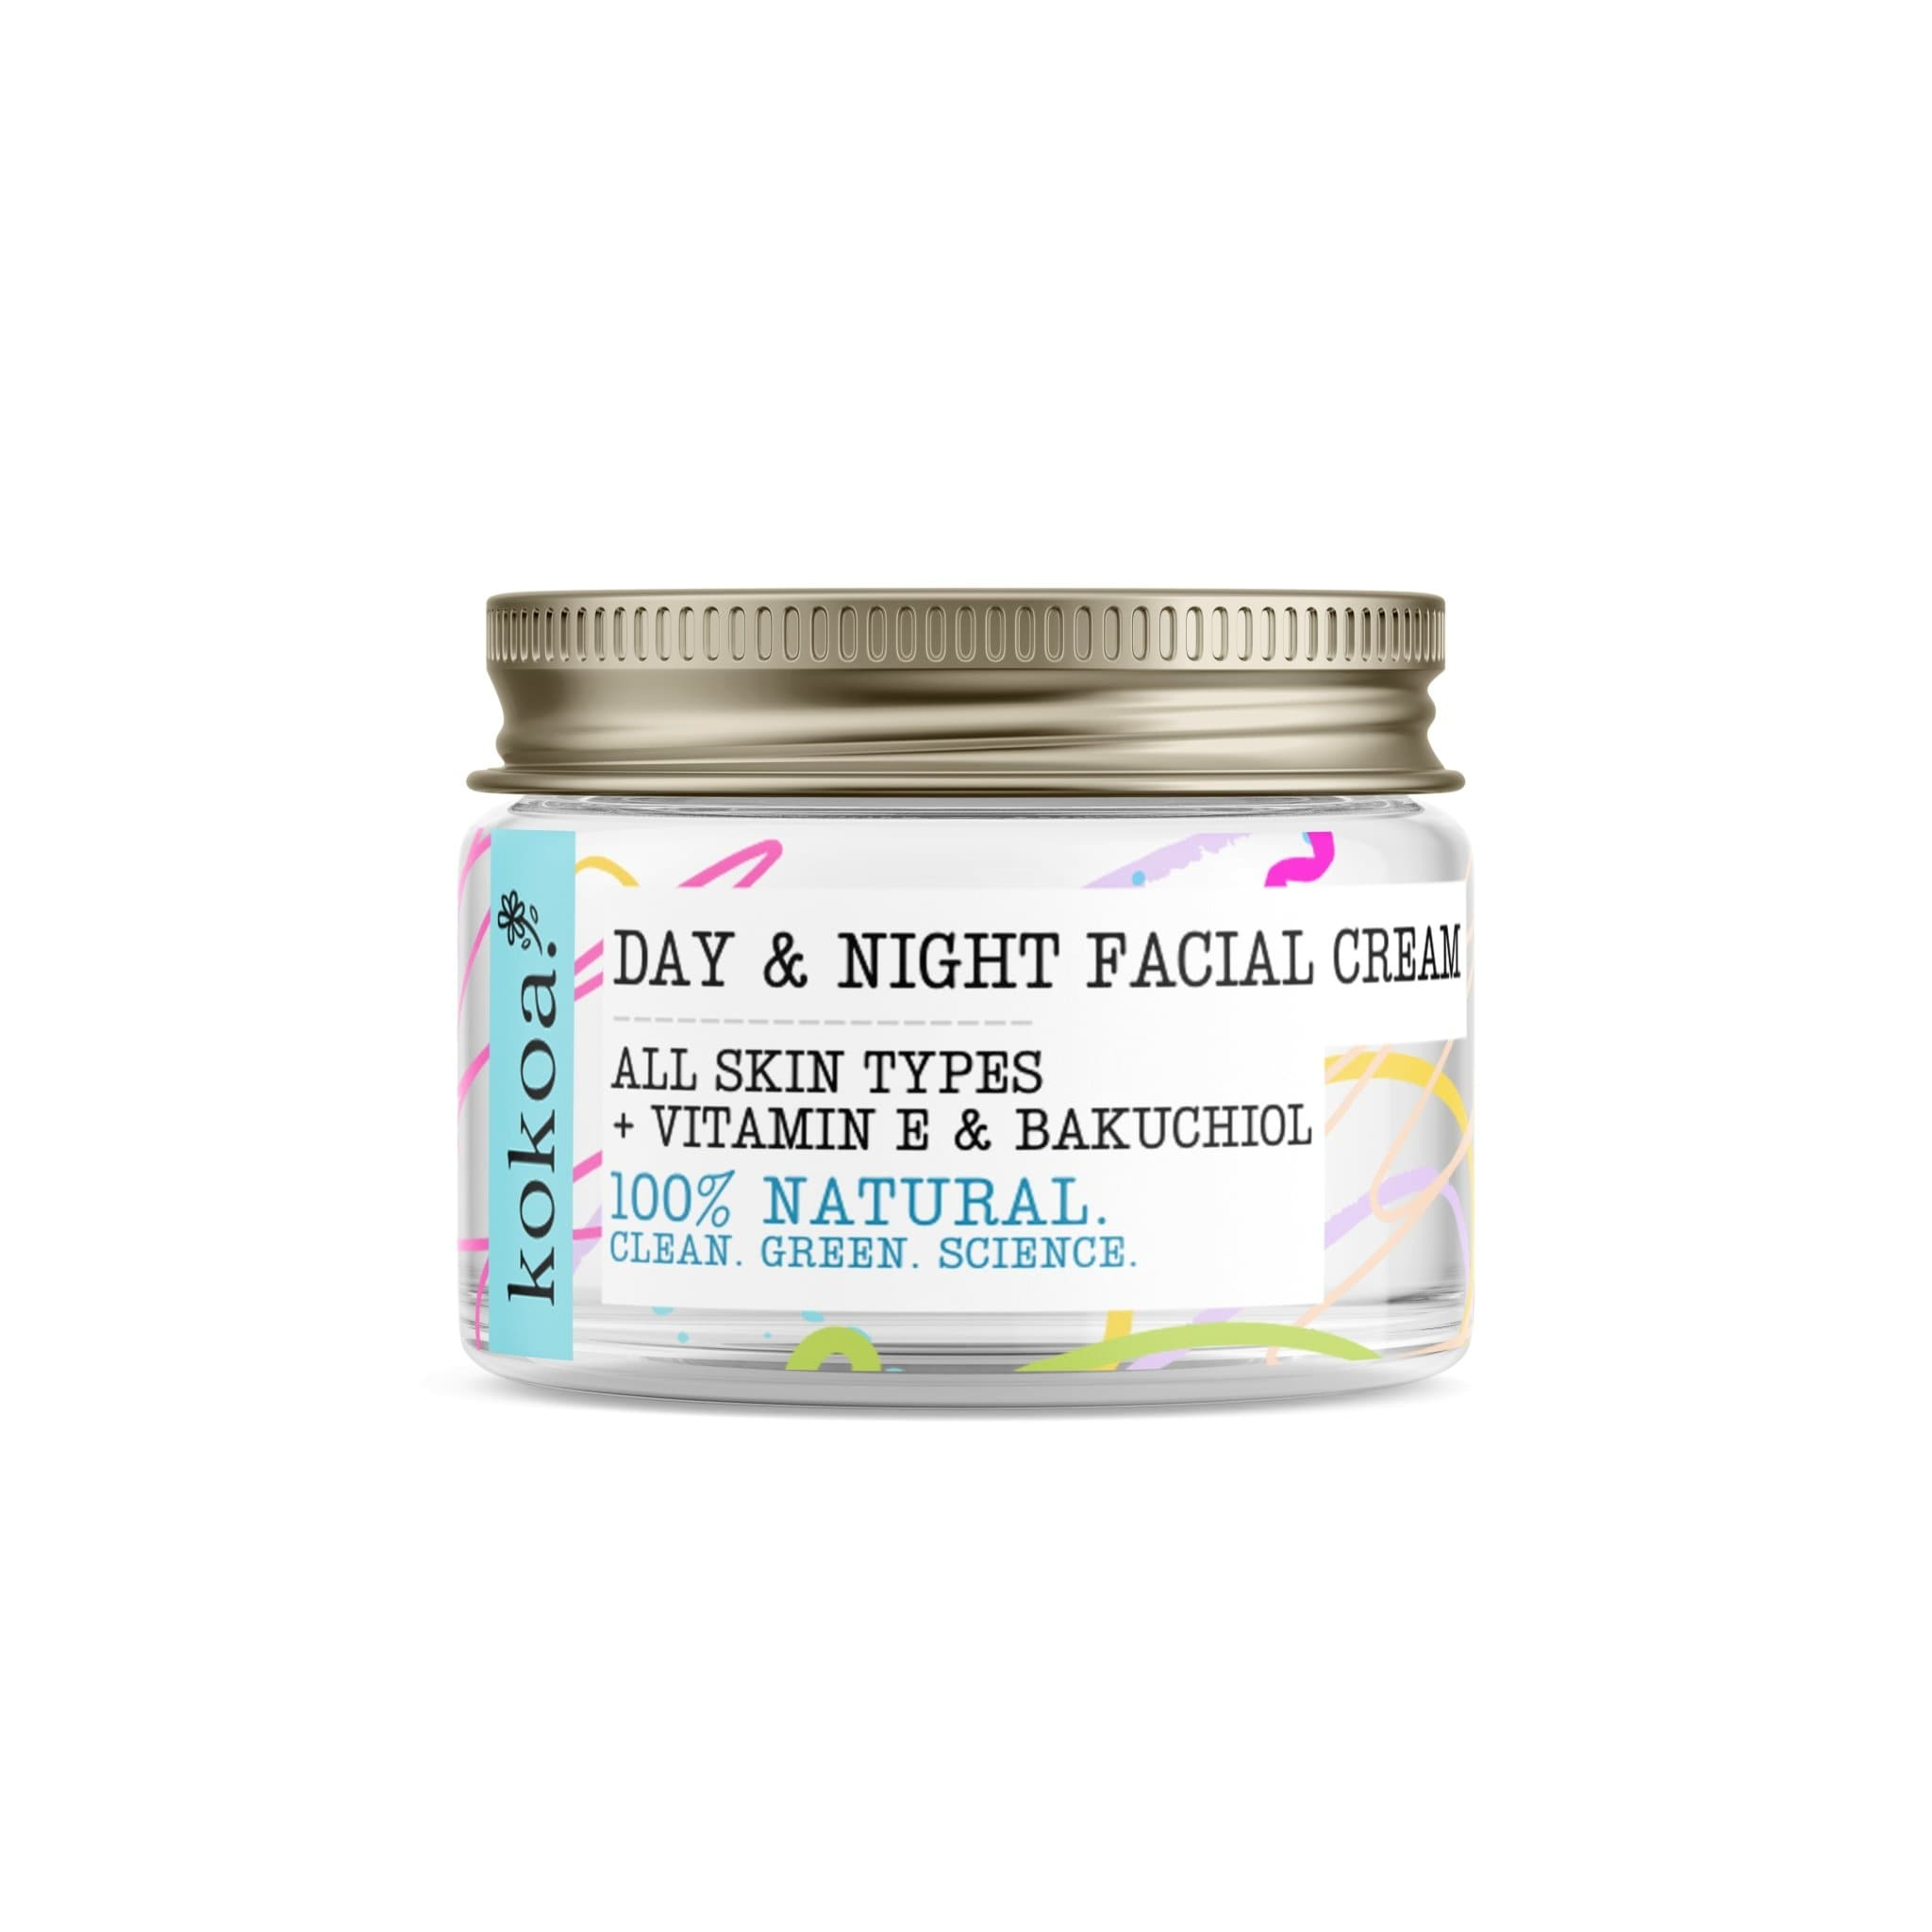 Day & Night Facial Cream with Bakuchiol & Vitamin E PRE ORDER FEB 14TH - Kokoa Eco Beauty